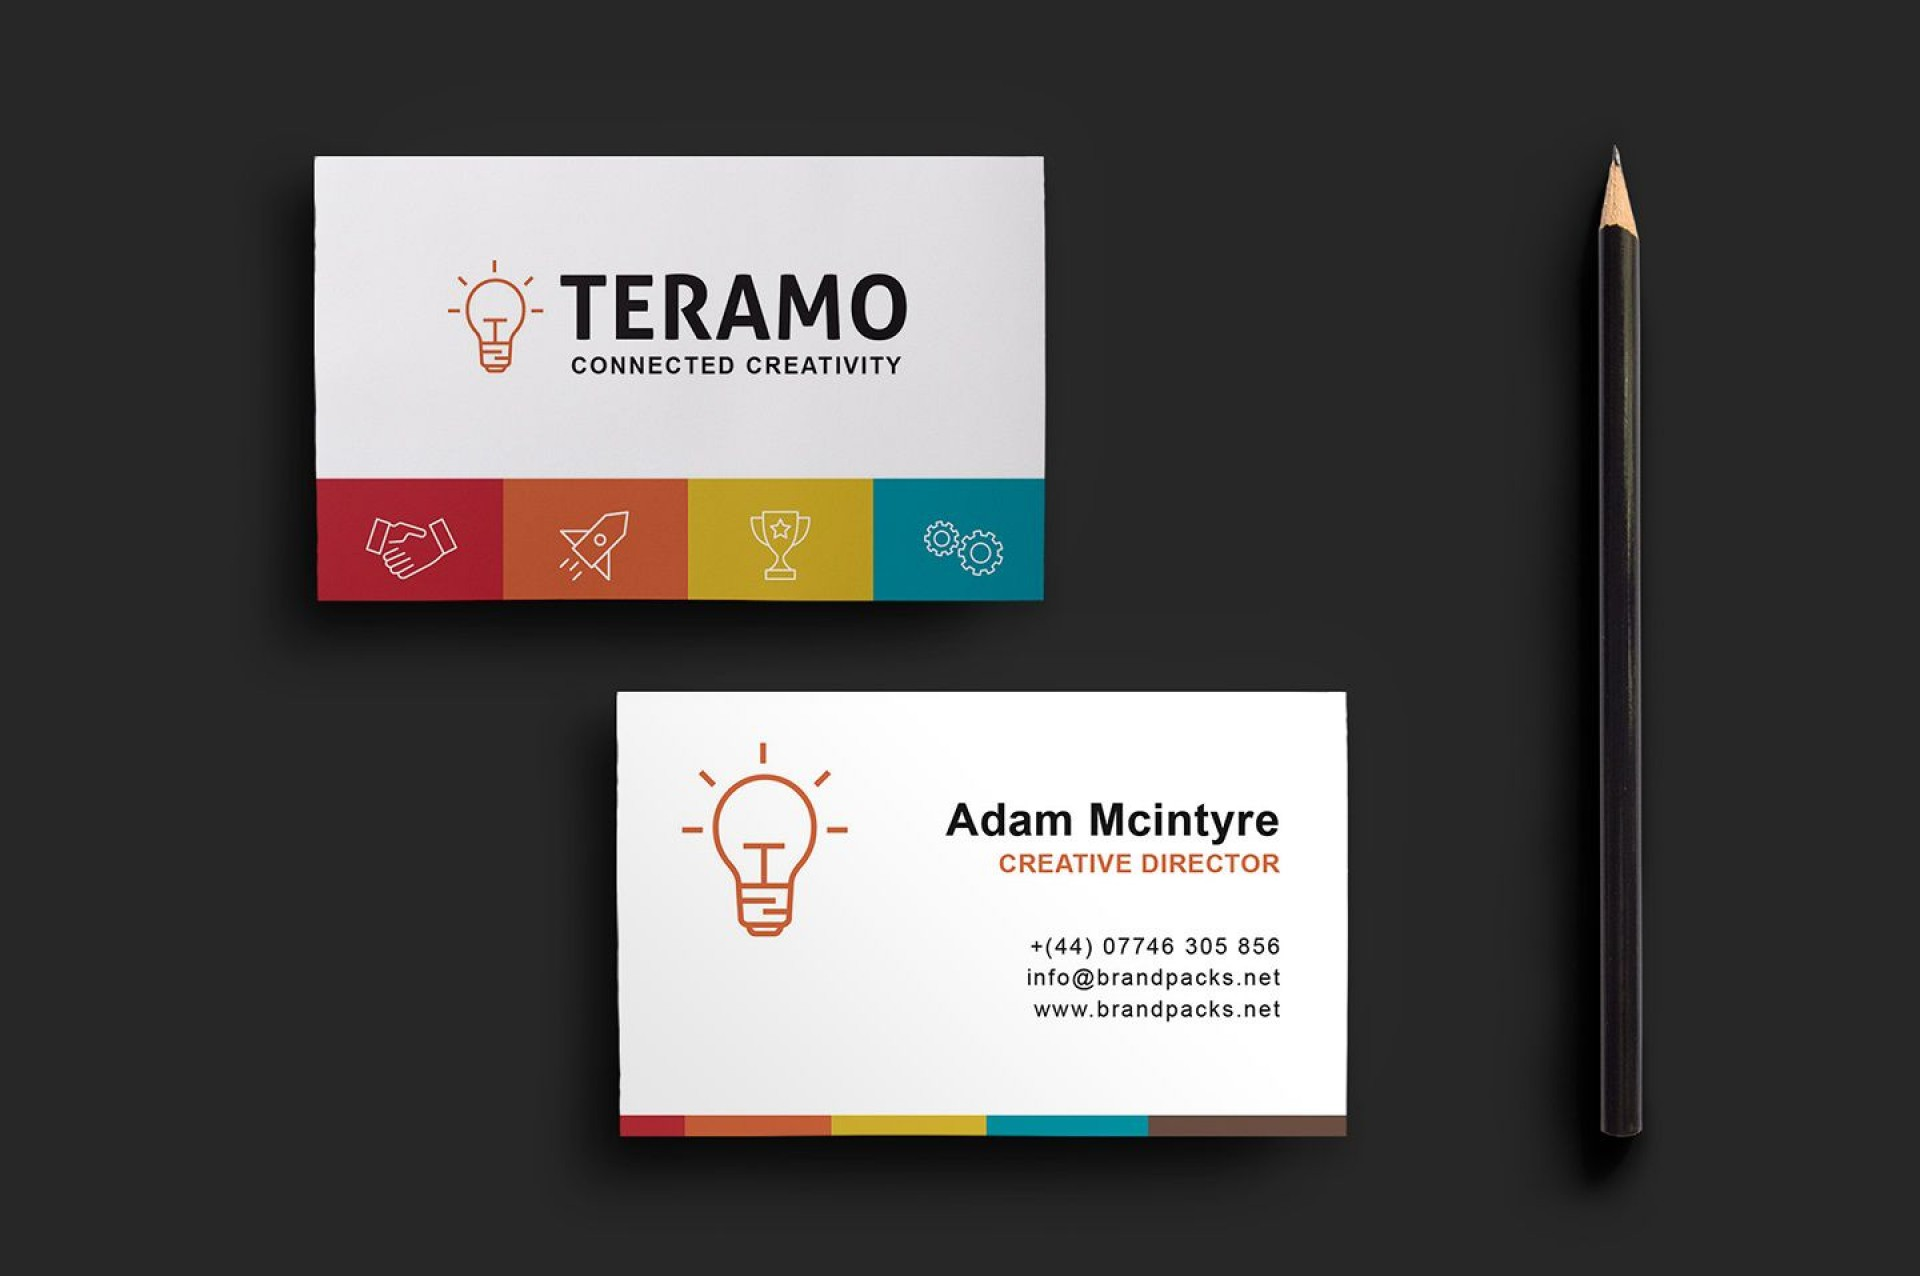 008 Remarkable Staple Busines Card Template Psd High Definition 1920